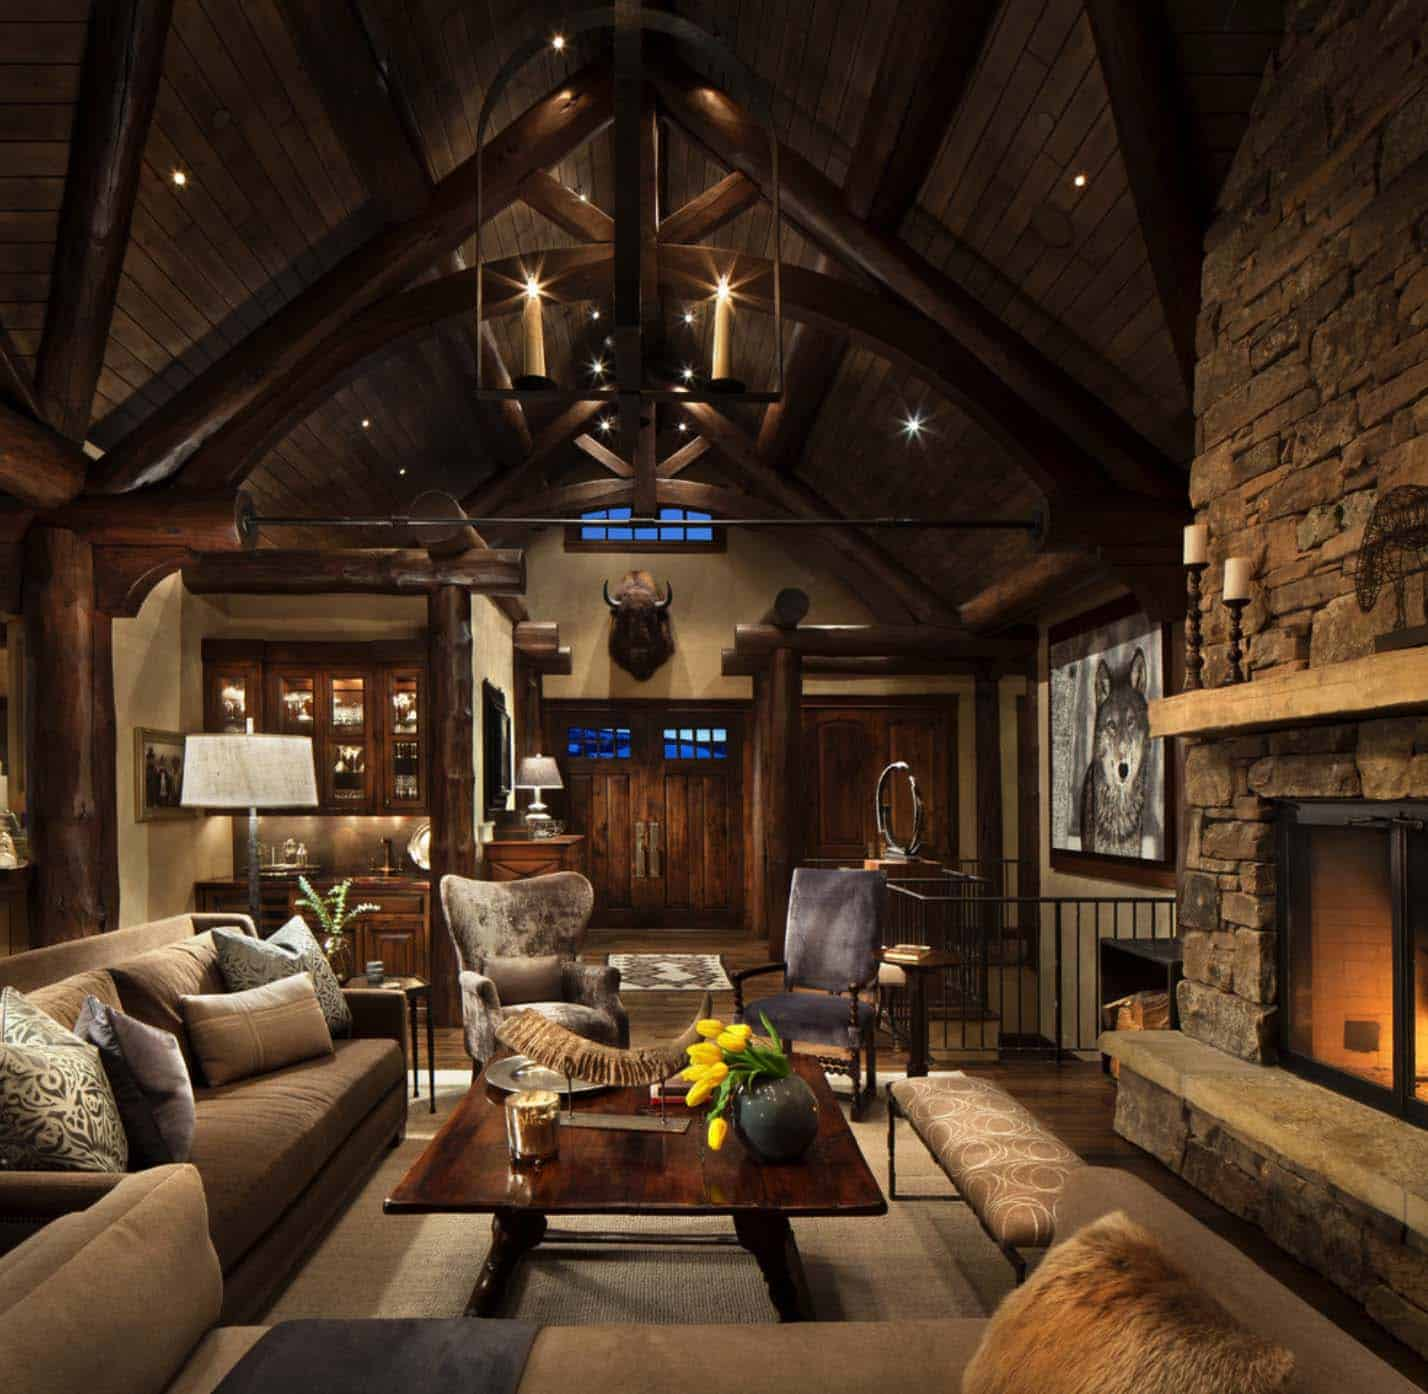 Rustic Interior Design Ideas Living Room: Exquisite Mountain Home Remodel Mixes Rustic With Modern